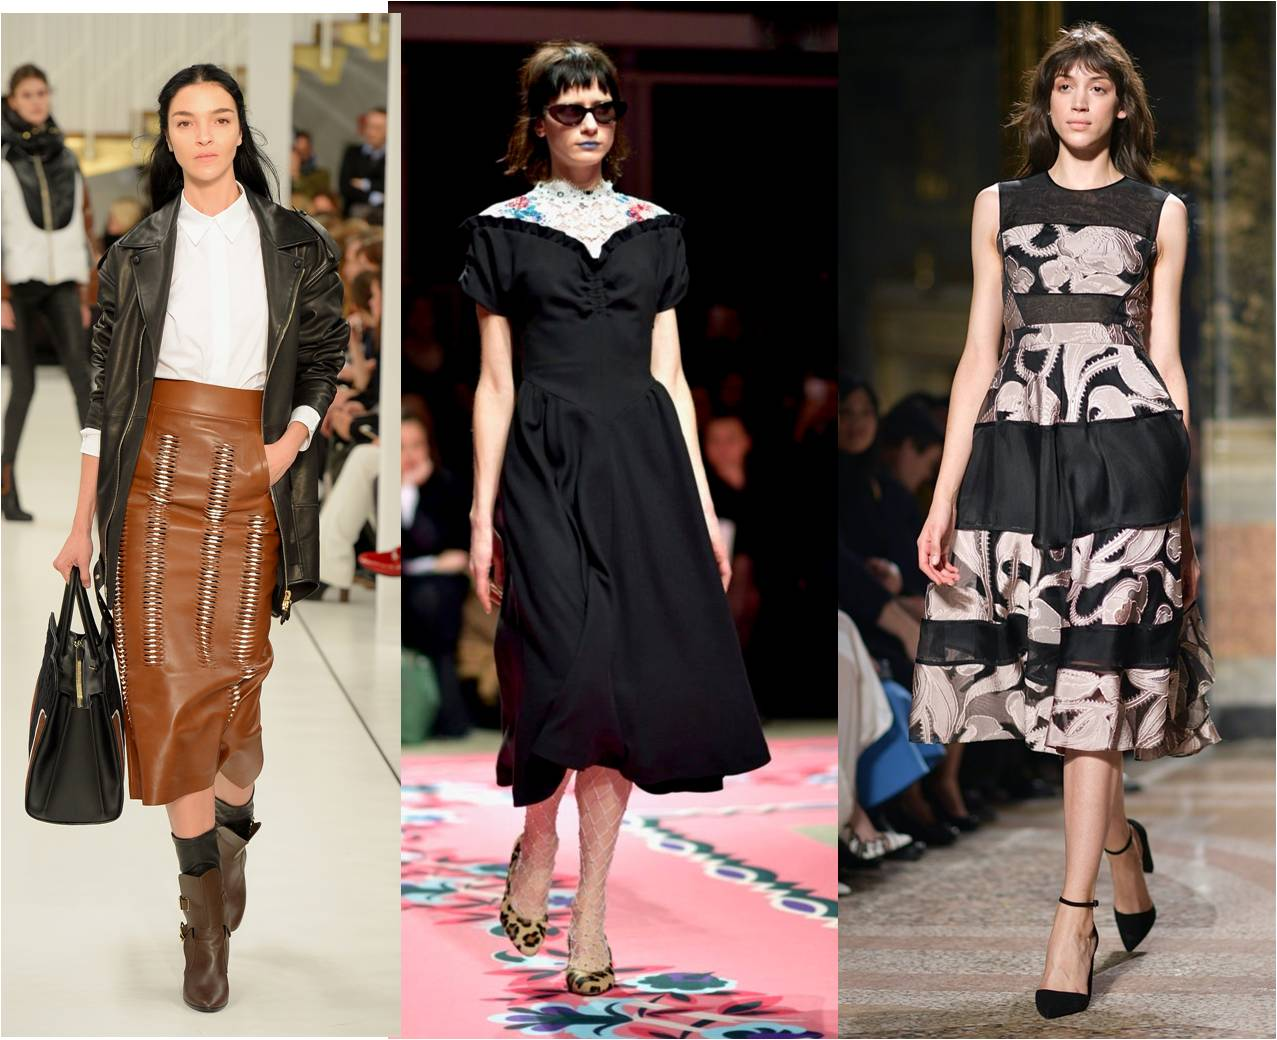 mid length skirts - autumn winter fashion trends 2017 -2018